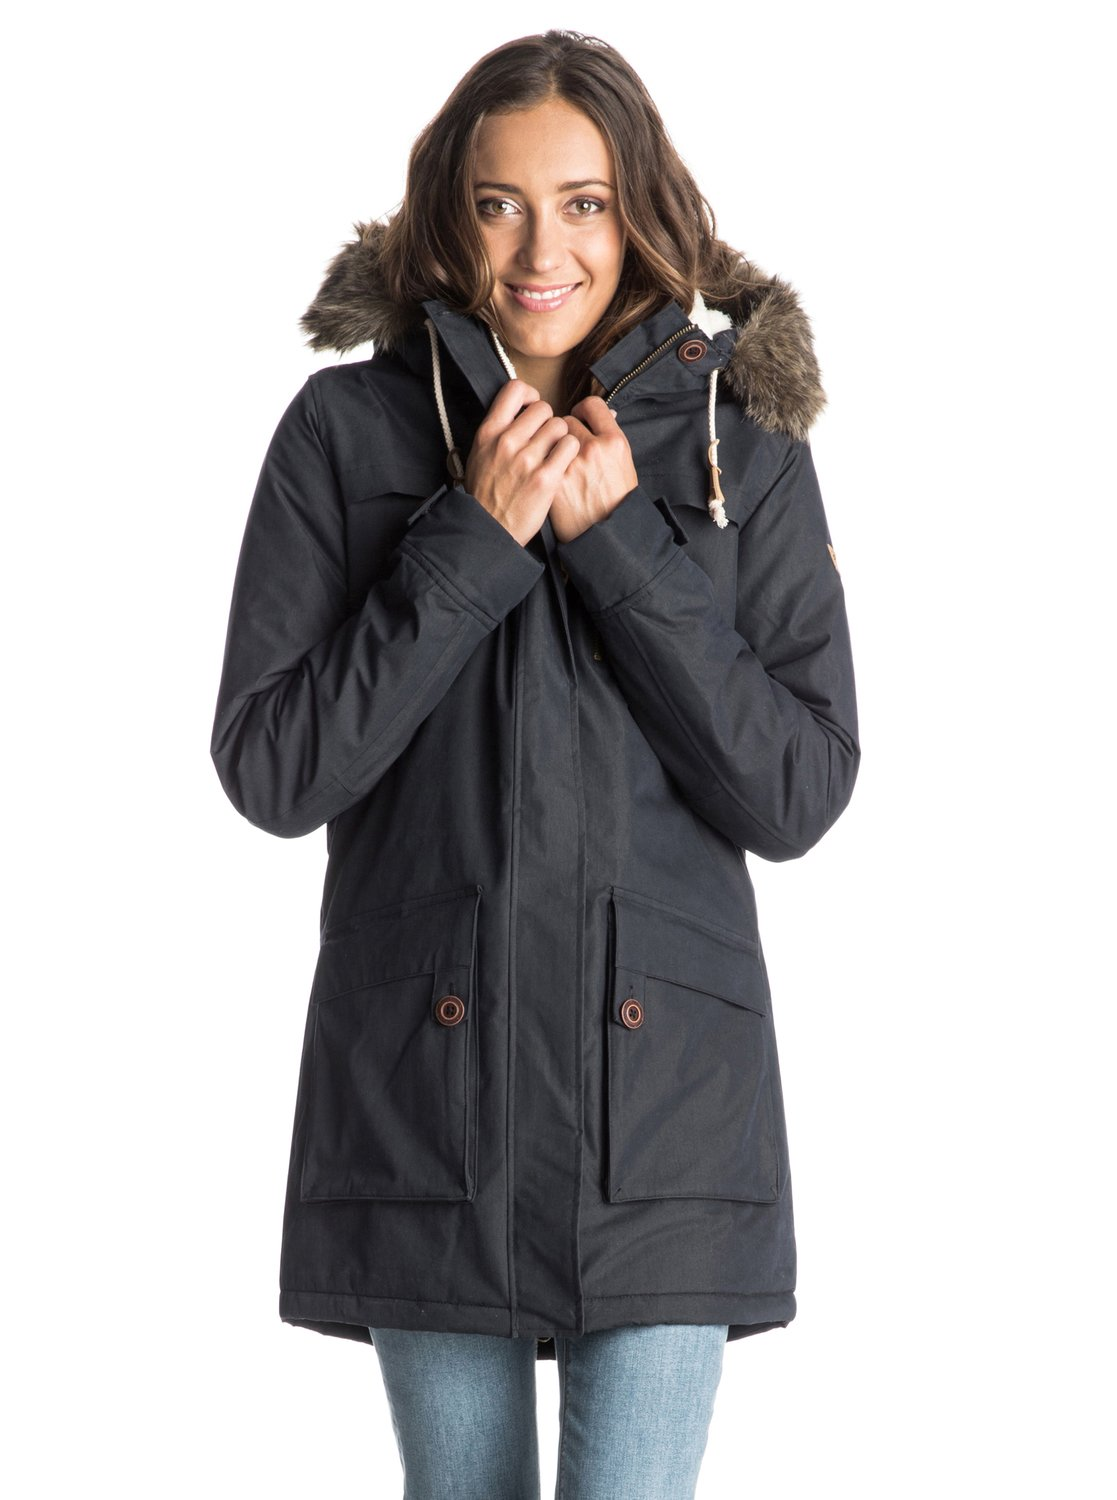 The Eada jacket is both durable and breathable, and comes in classic black, making it easy to clean and great when paired with just about any cold weather accessories. The grown-up hoodie retails.